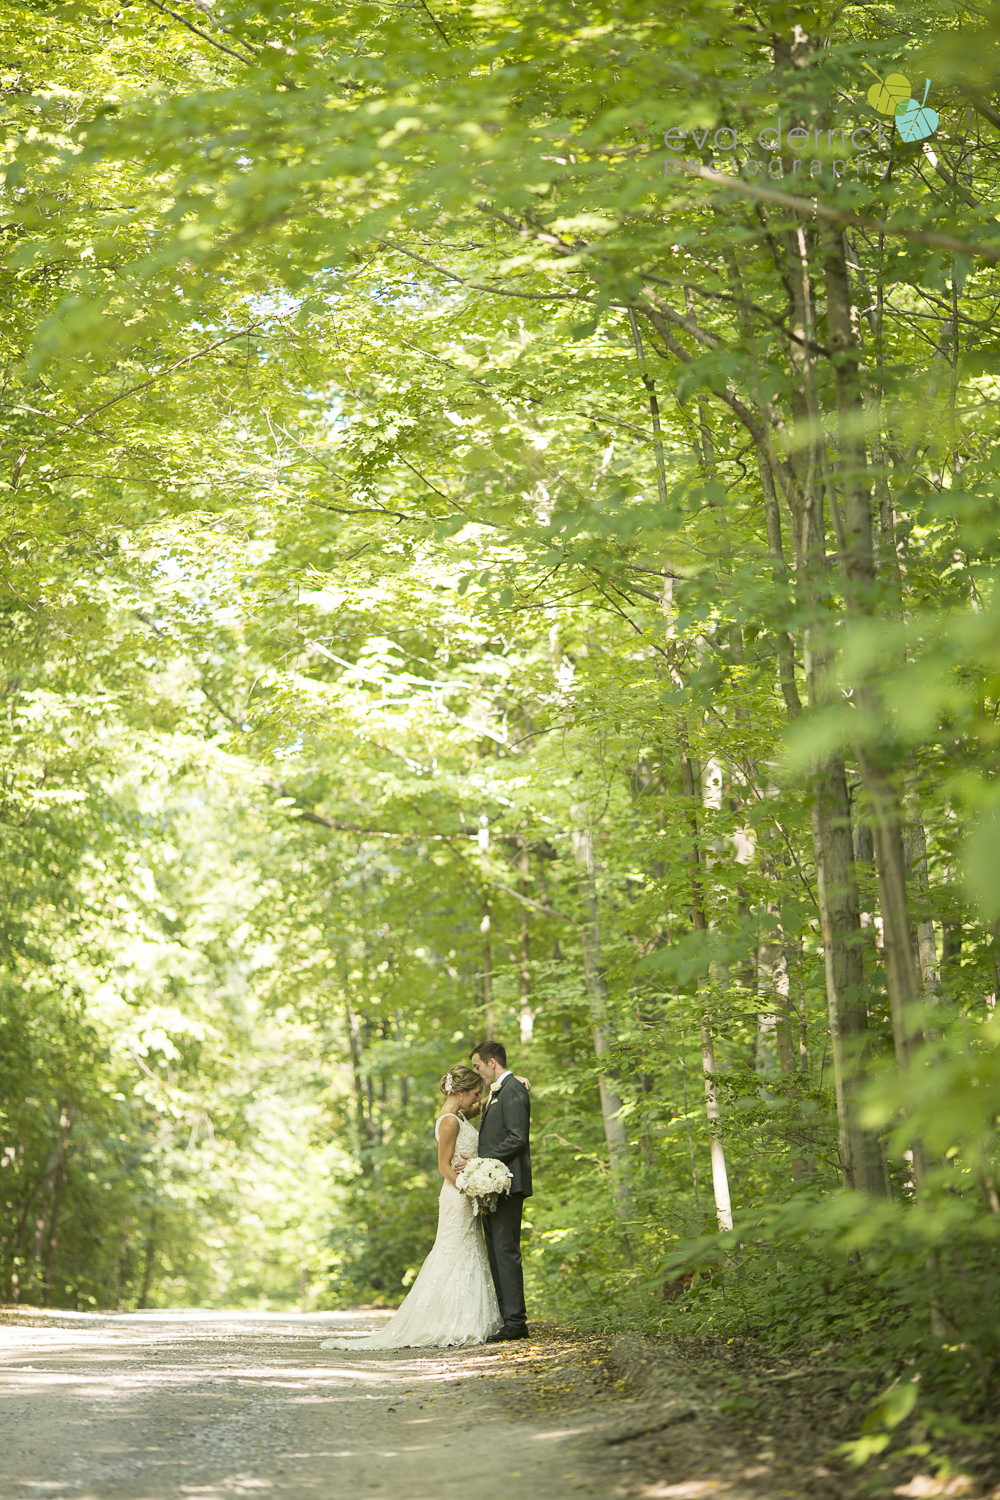 Niagara-on-the-Lake-Wedding-Photographer-White-Oaks-Resort-Spa-Niagara-Weddings-photography-by-Eva-Derrick-Photography-026.JPG